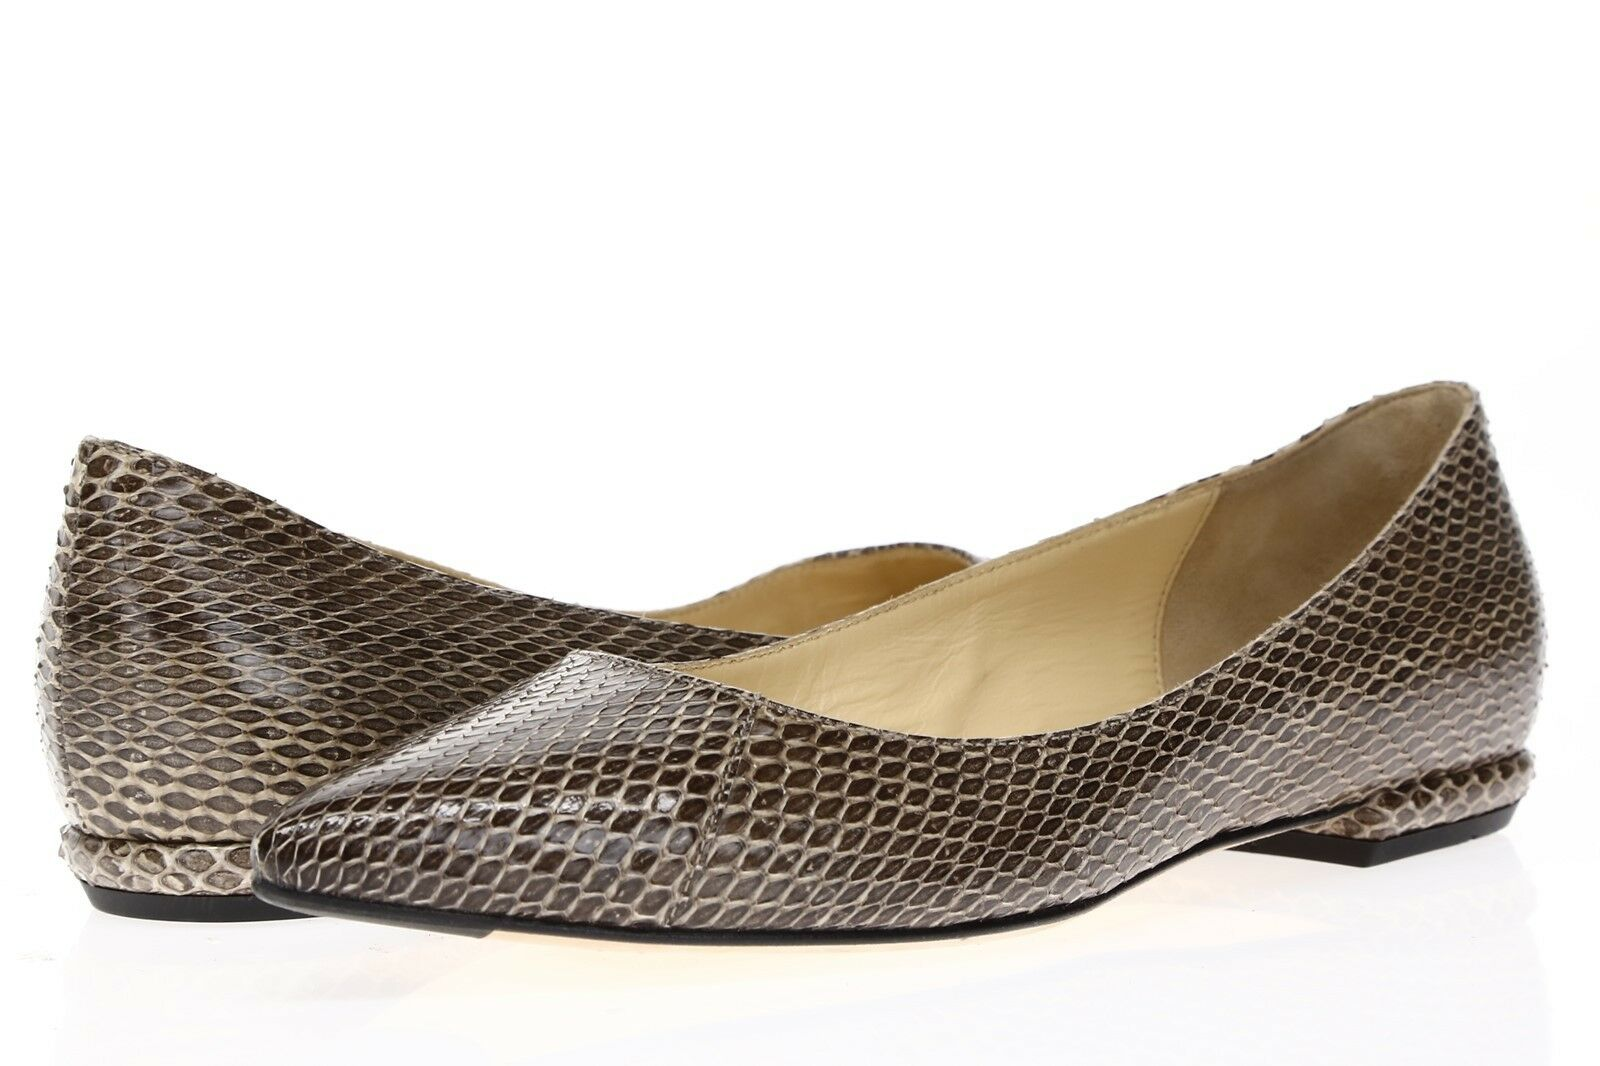 MARVIN K. Womens Snake Print Print Print Leather Pointy Toe Flat shoes Sz 6 8974c4